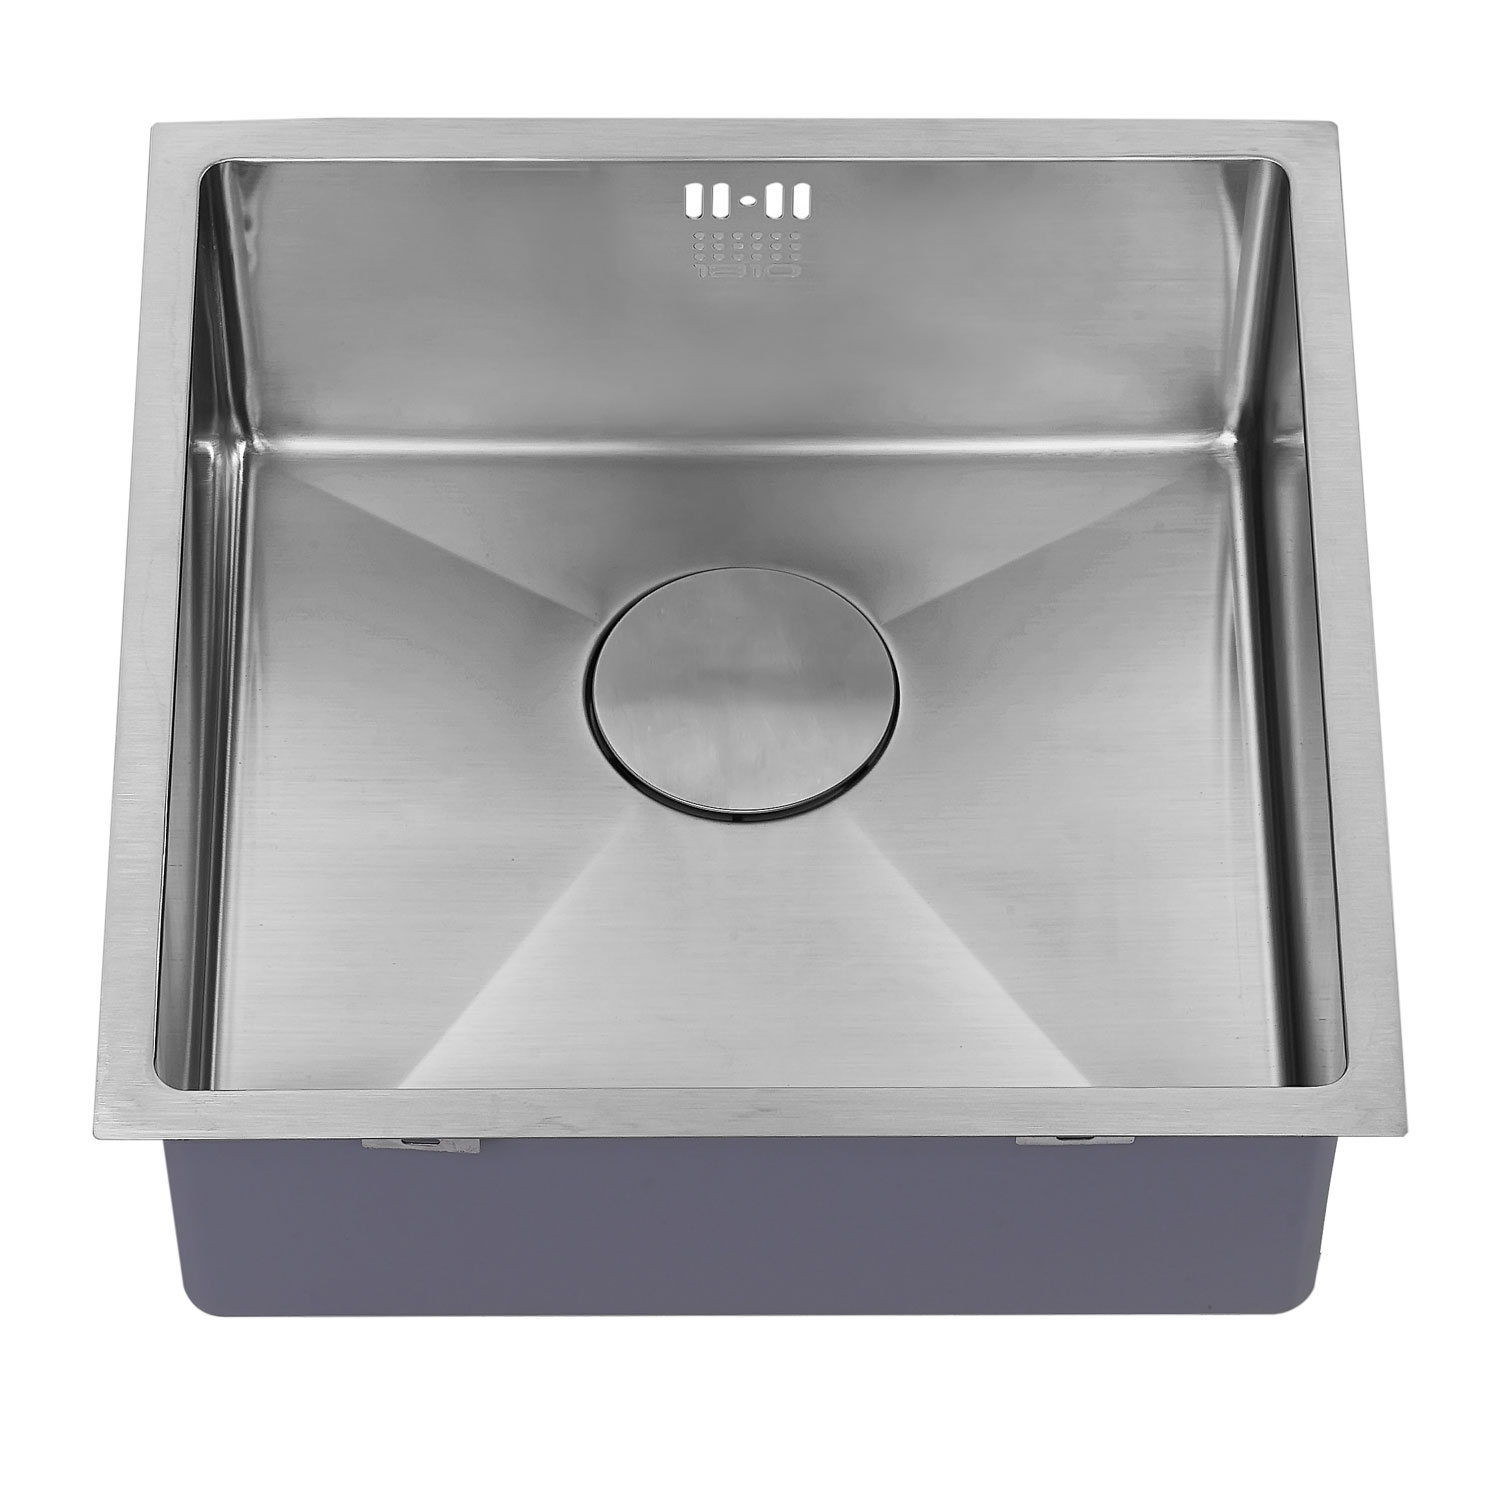 The 1810 Company Zenuno15 400U 1.0 Bowl Kitchen Sink - Stainless Steel